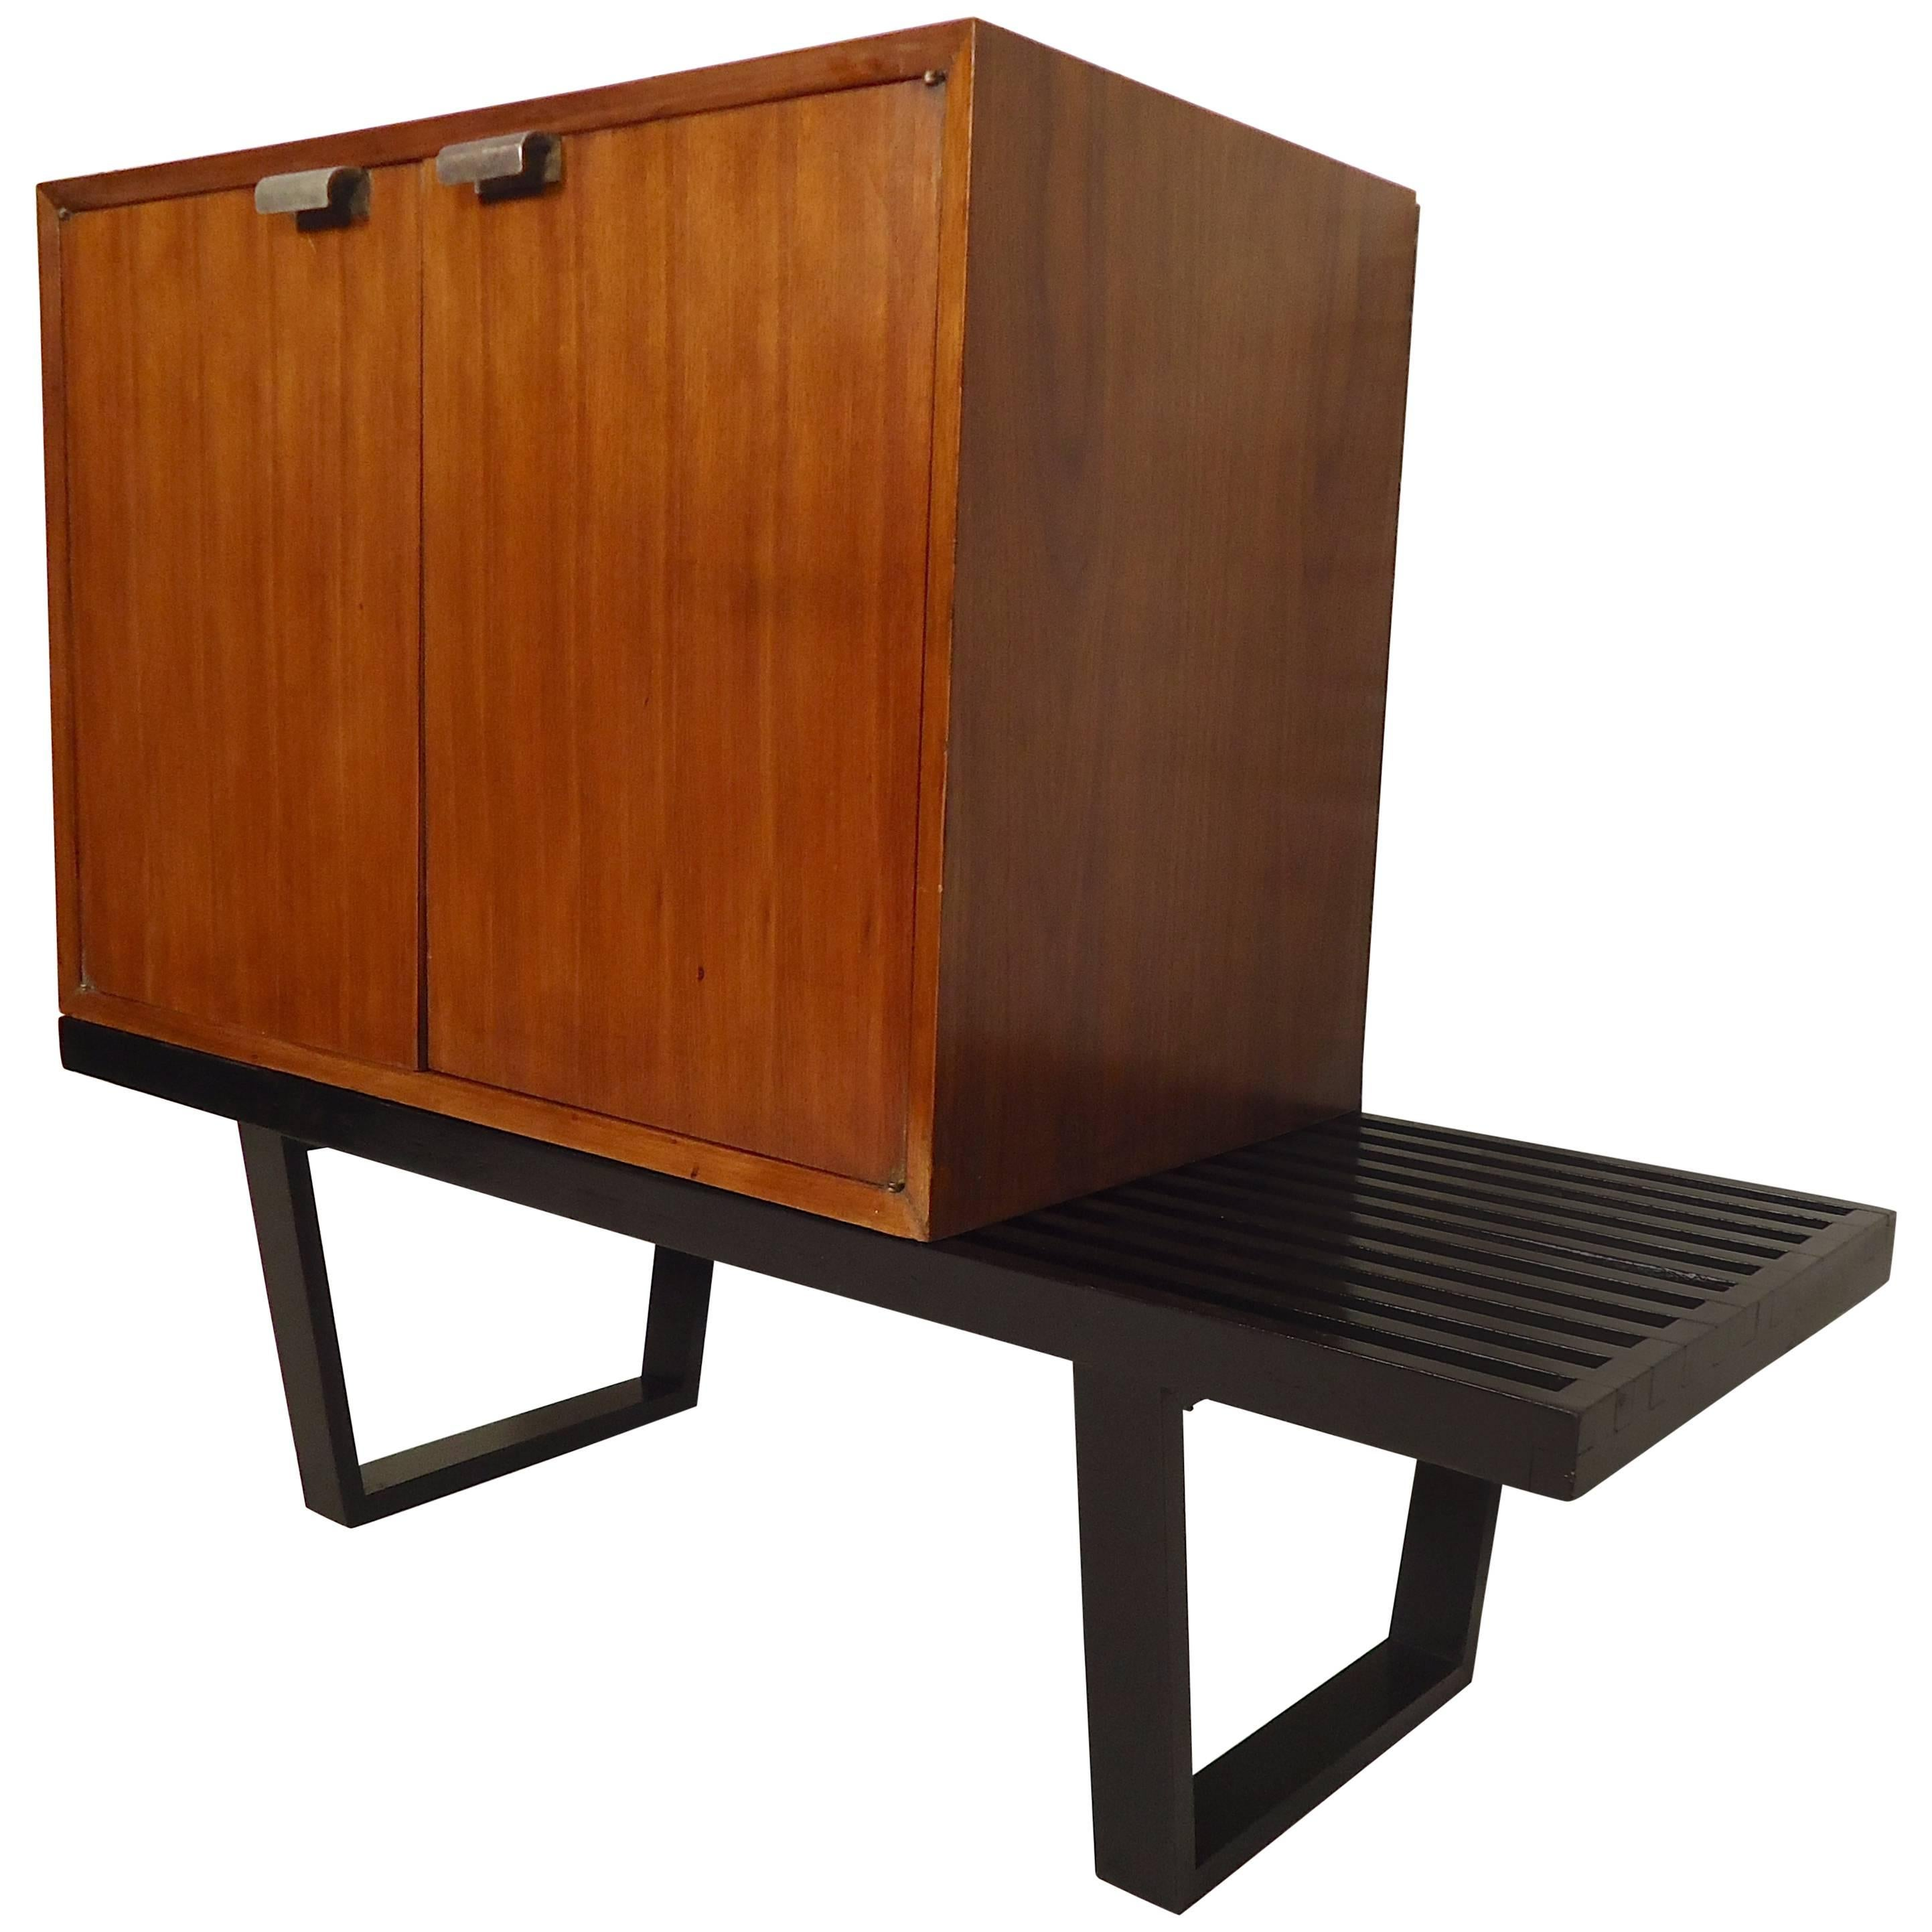 George Nelson for Herman Miller Modular Cabinet and Bench